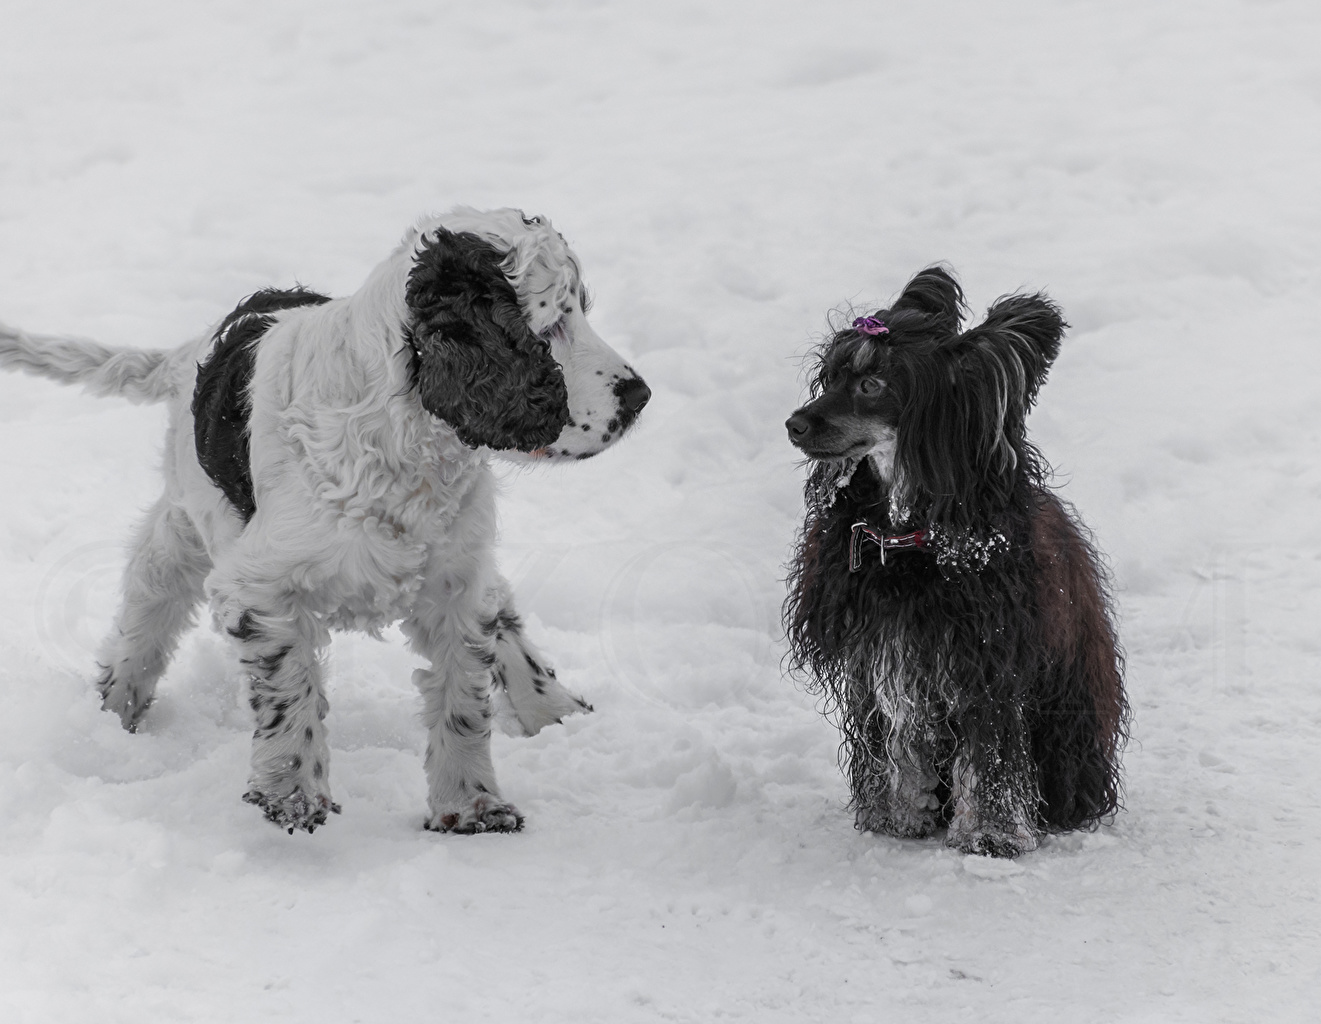 Photos Chinese Crested dog English Cocker Spaniel Snow animal 1ZOOM Dogs Animals